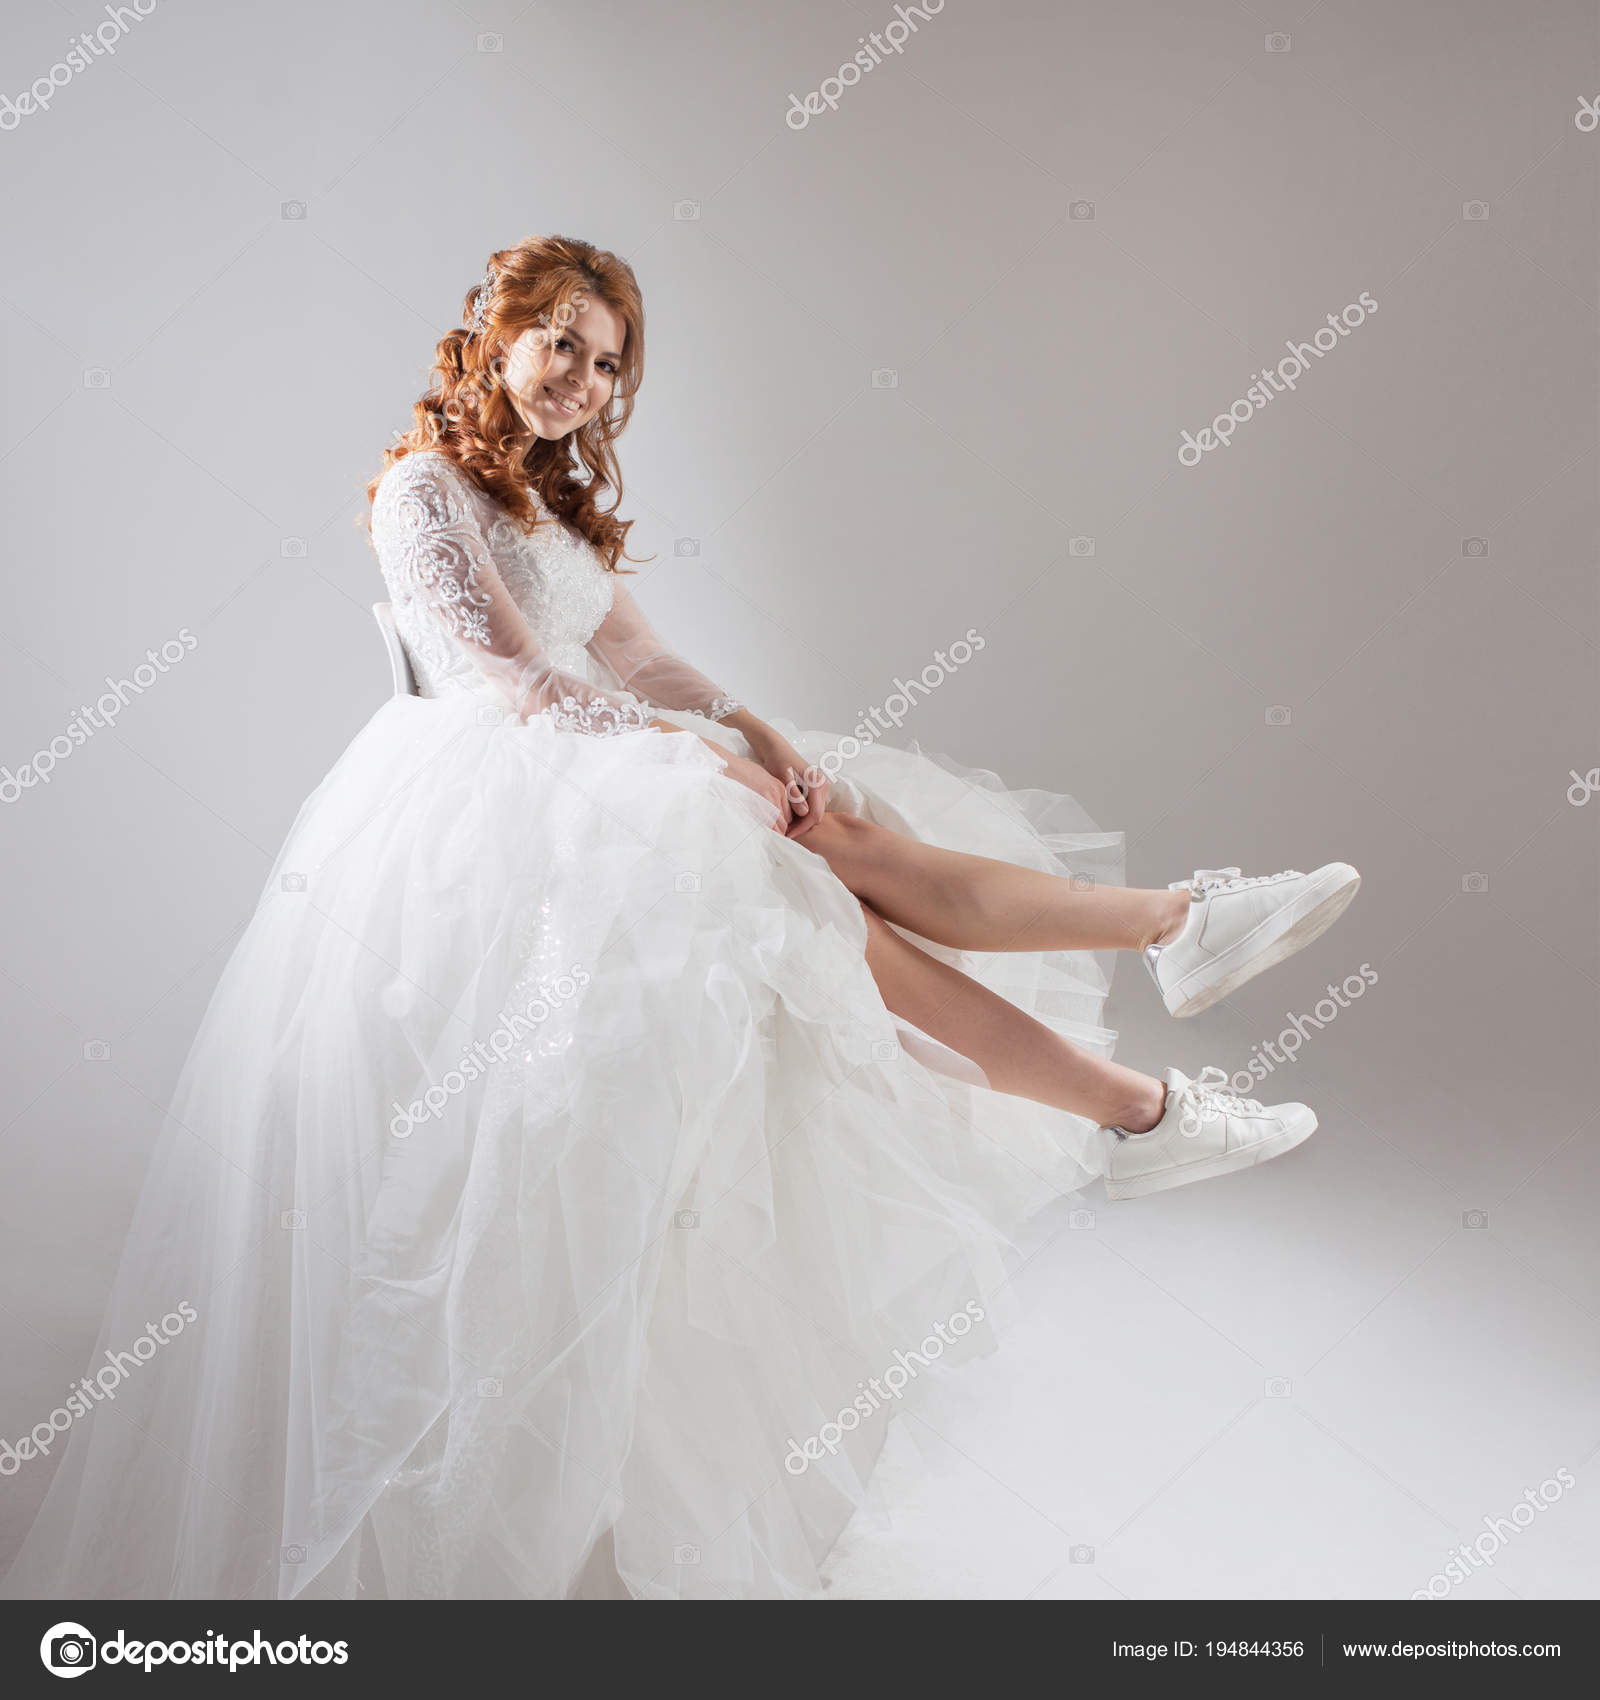 Charming girl in magnificent wedding dress and white